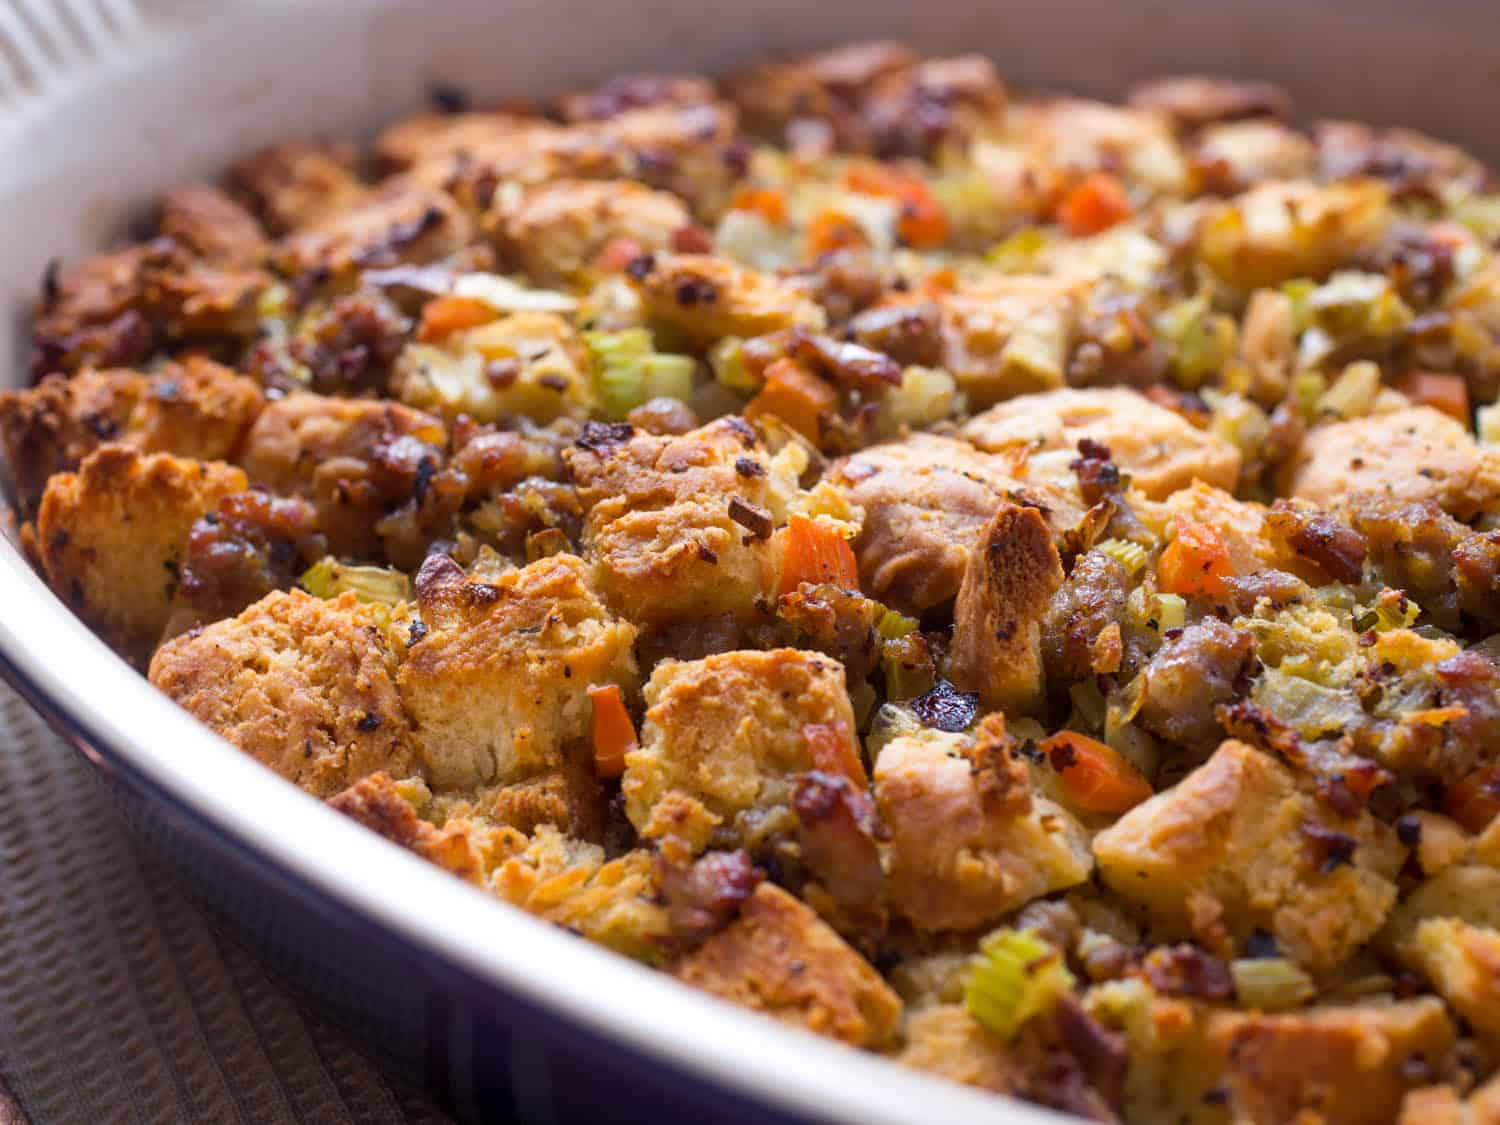 Buttermilk biscuit stuffing